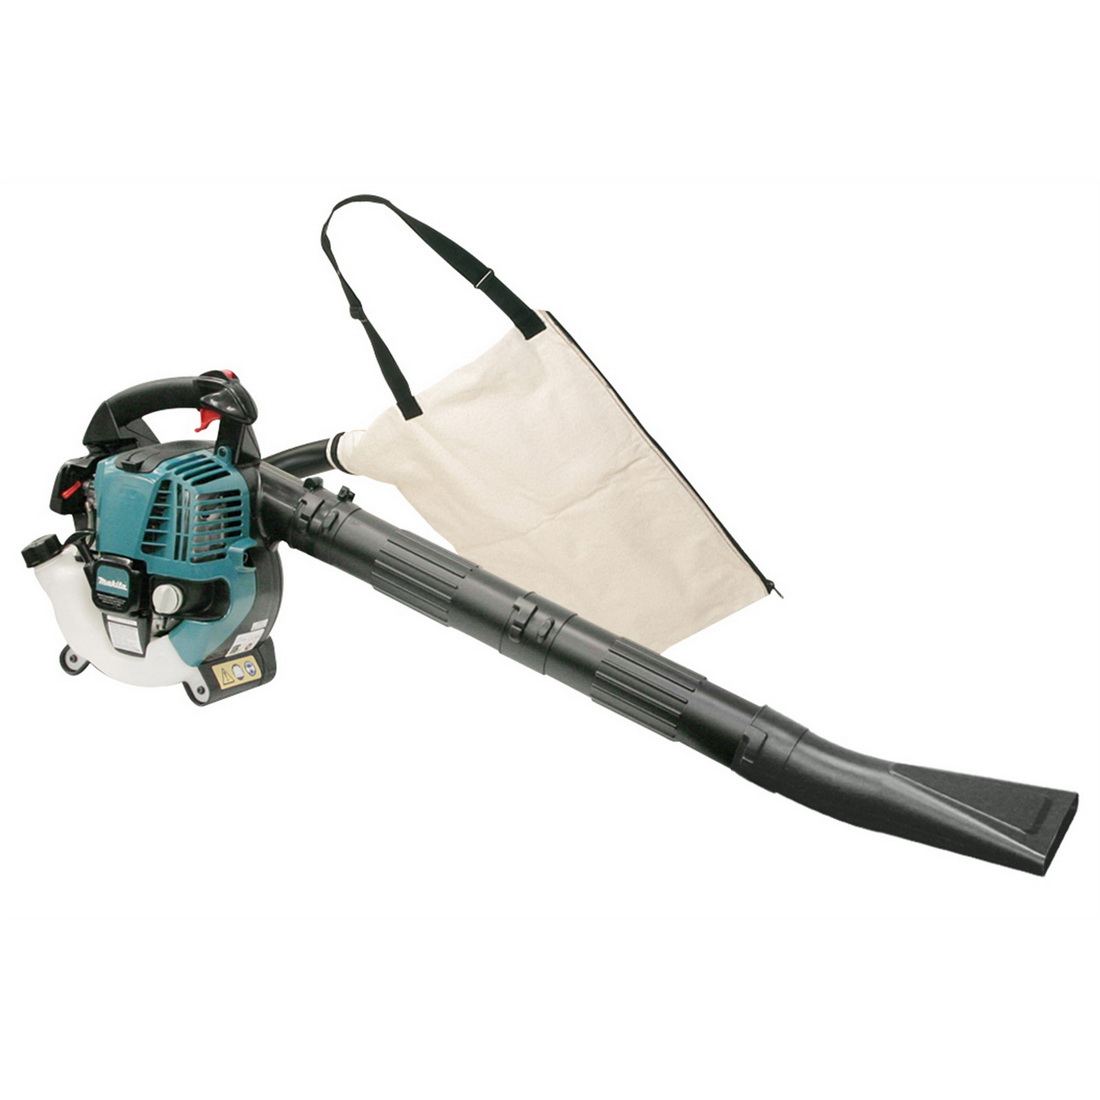 4 Stroke Petrol Blower With Vac Bag Attachment 24.5cc